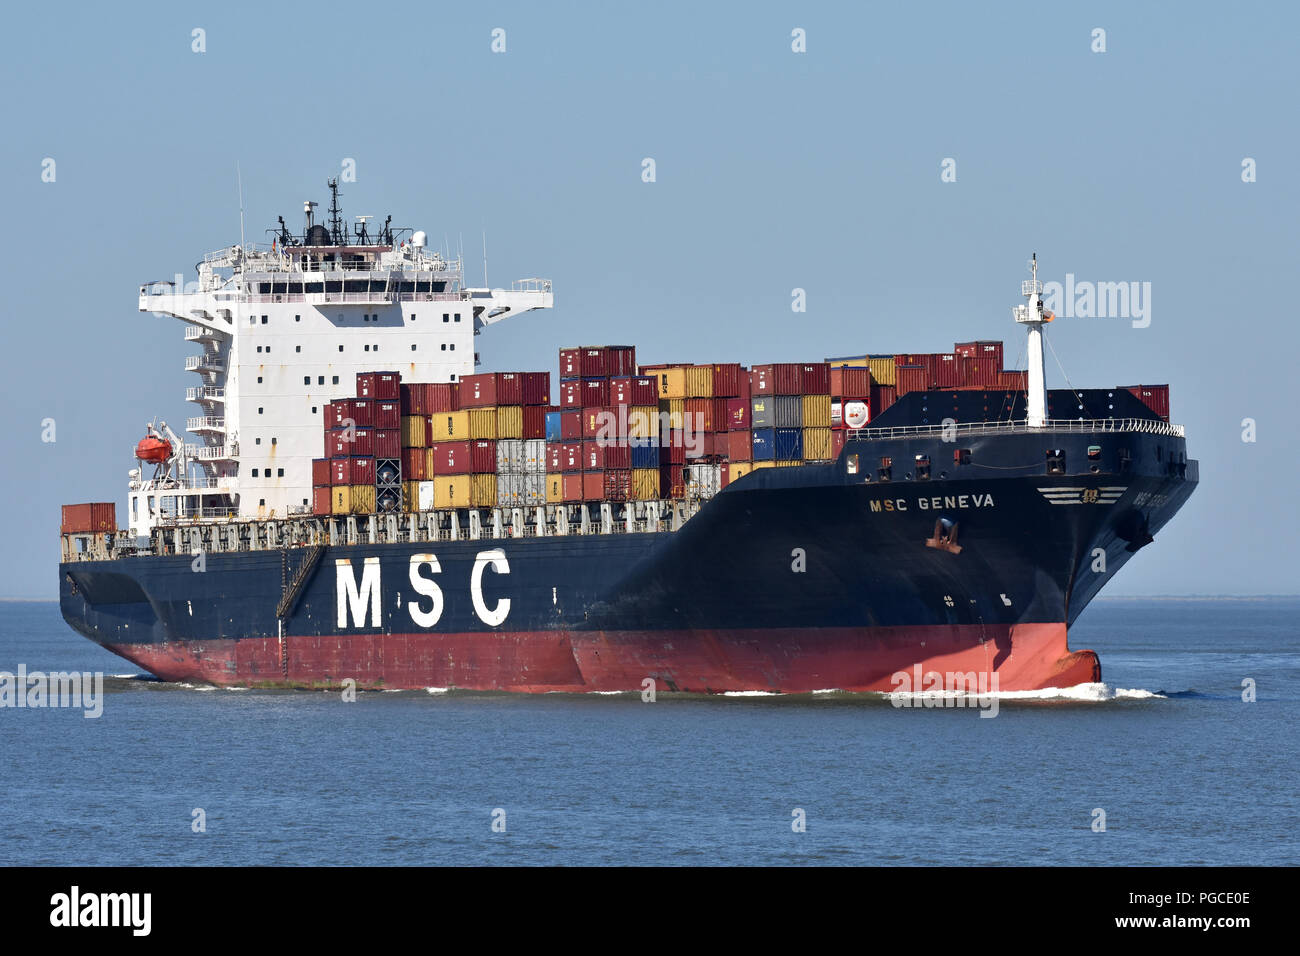 MSC Geneva passing Cuxhaven heading for Hamburg Stock Photo